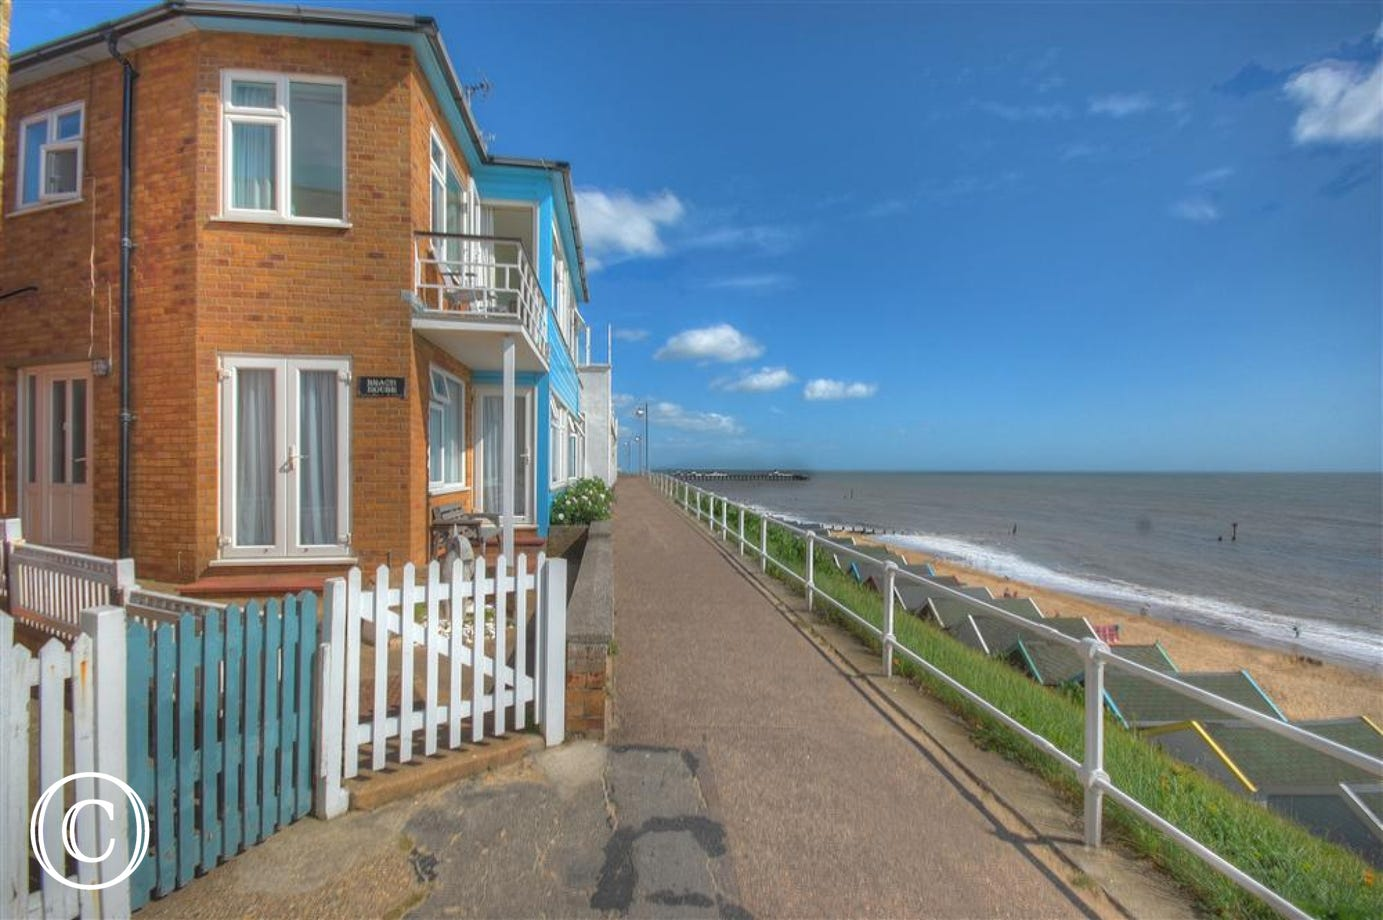 Situated right on the sea front this property is beautifully scenic and an ideal location.